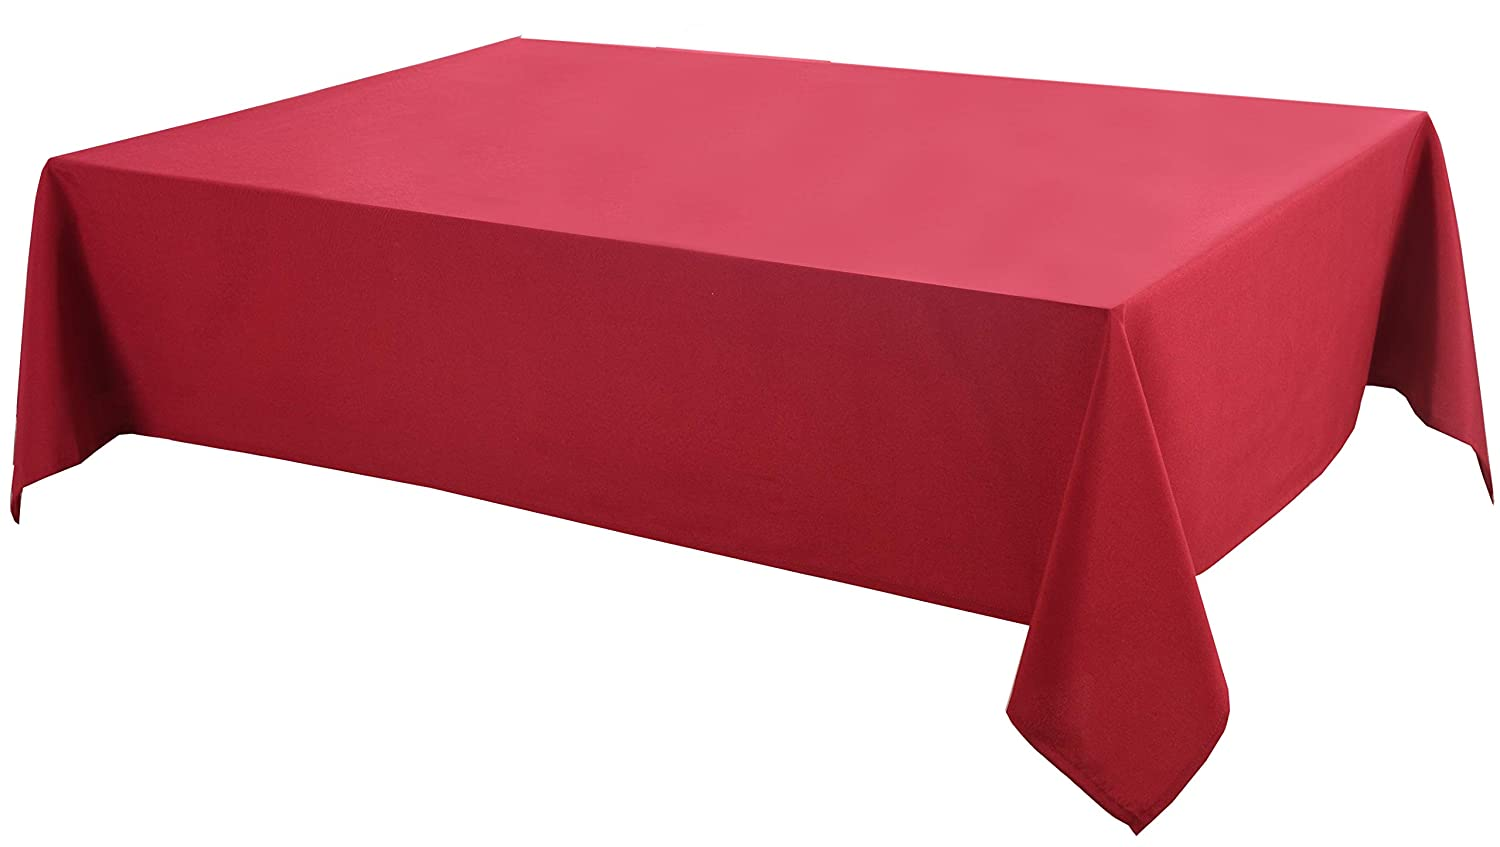 Biscaynebay Fabric Table Cloth, Water Resistant Spill Proof Fabric Tablecloths for Dining, Kitchen, Wedding and Party, 52X70, Red